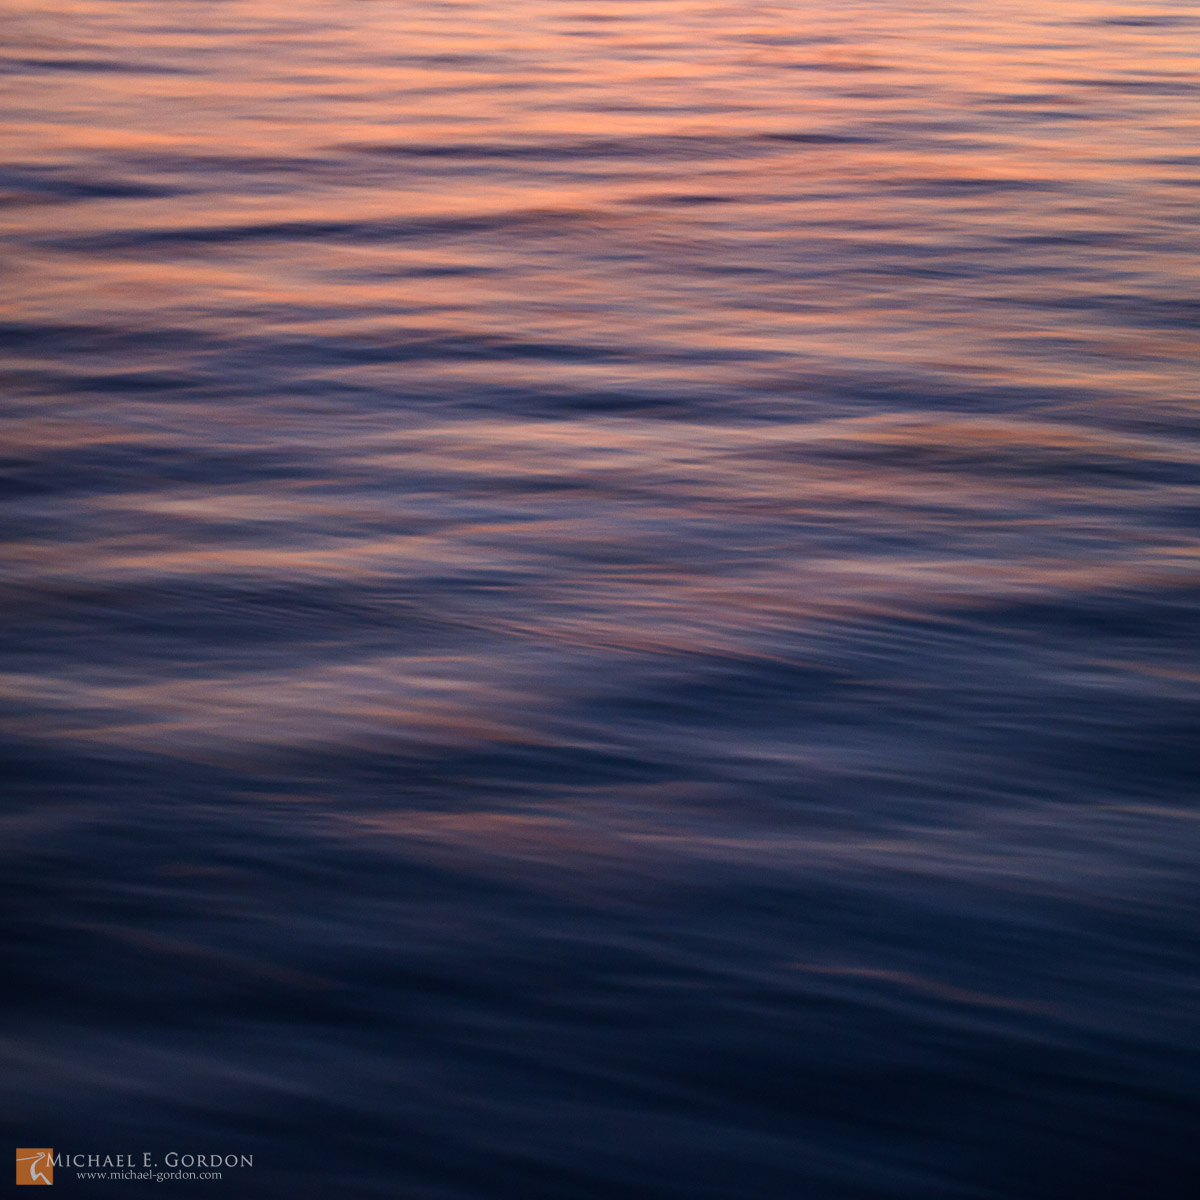 color,photo,picture,Pacific Ocean,waves,ripples,current,reflection,wind,breeze,motion,study,blue,pink,red,sunset,blur,soft,peaceful,calm,tranquil, photo